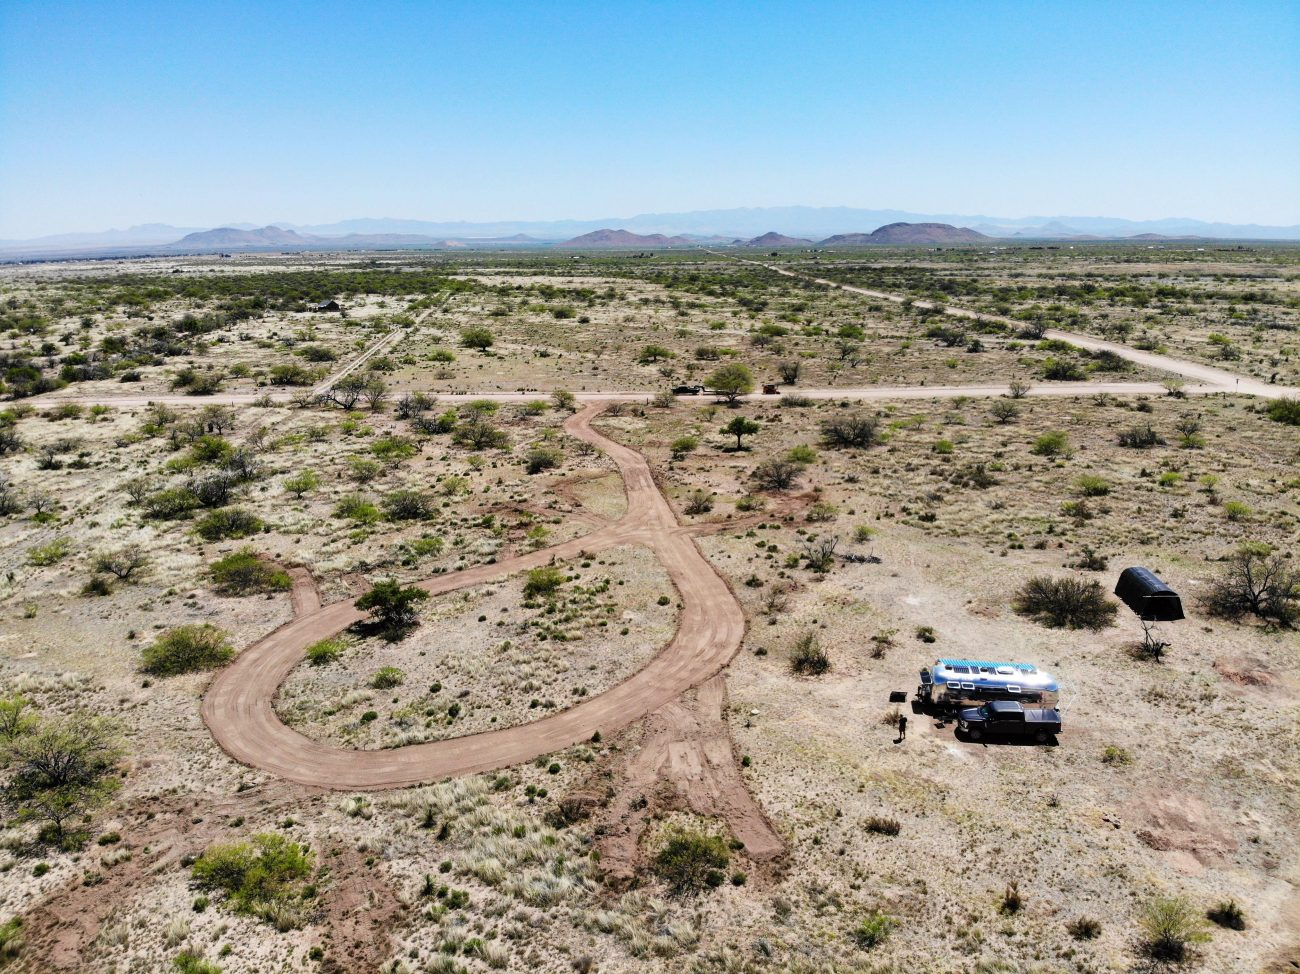 Ariel view of driveway on off-grid property